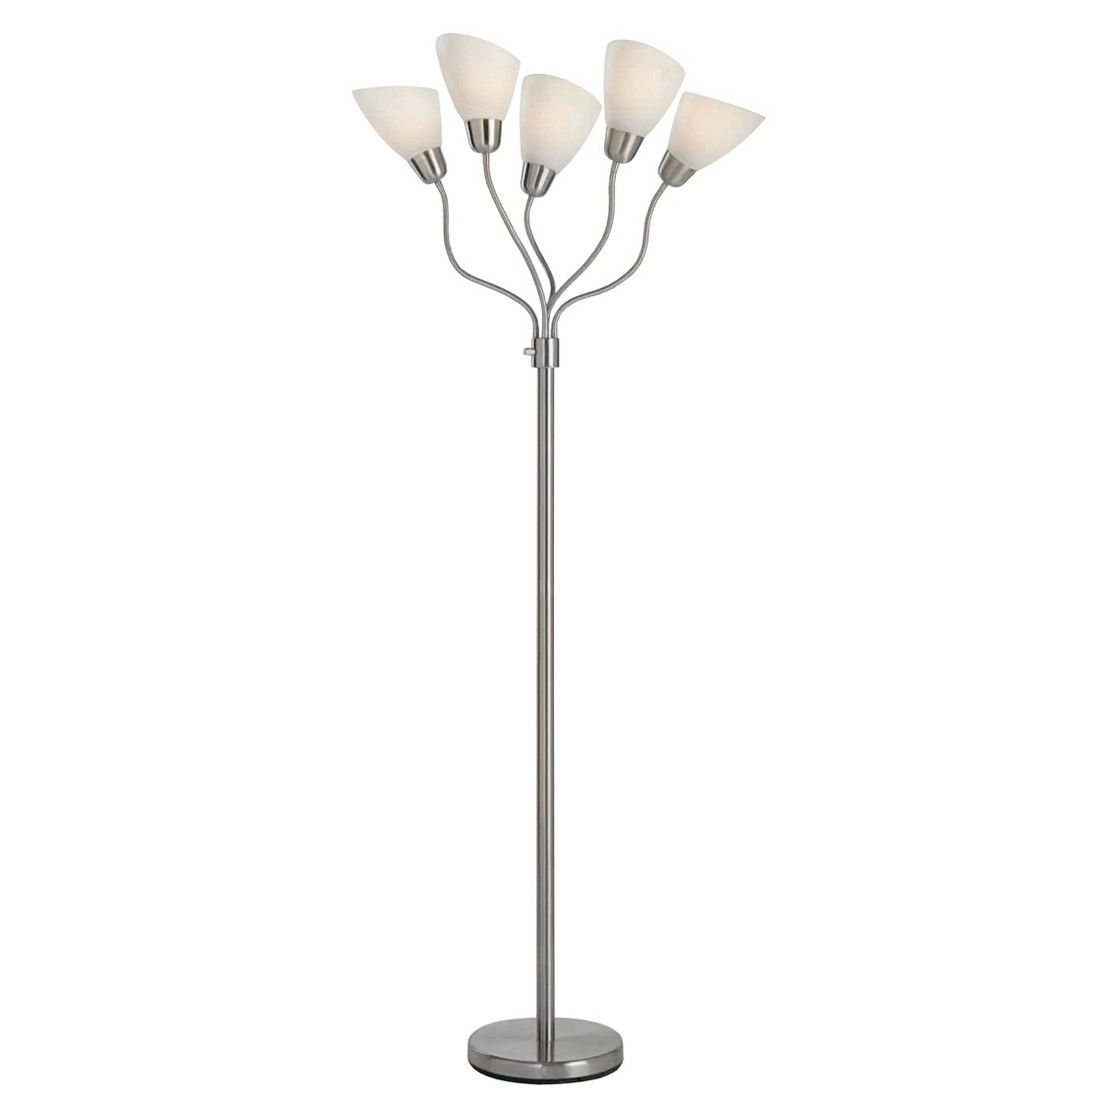 Awesome Room Essentials  5 Head Floor Lamp   White